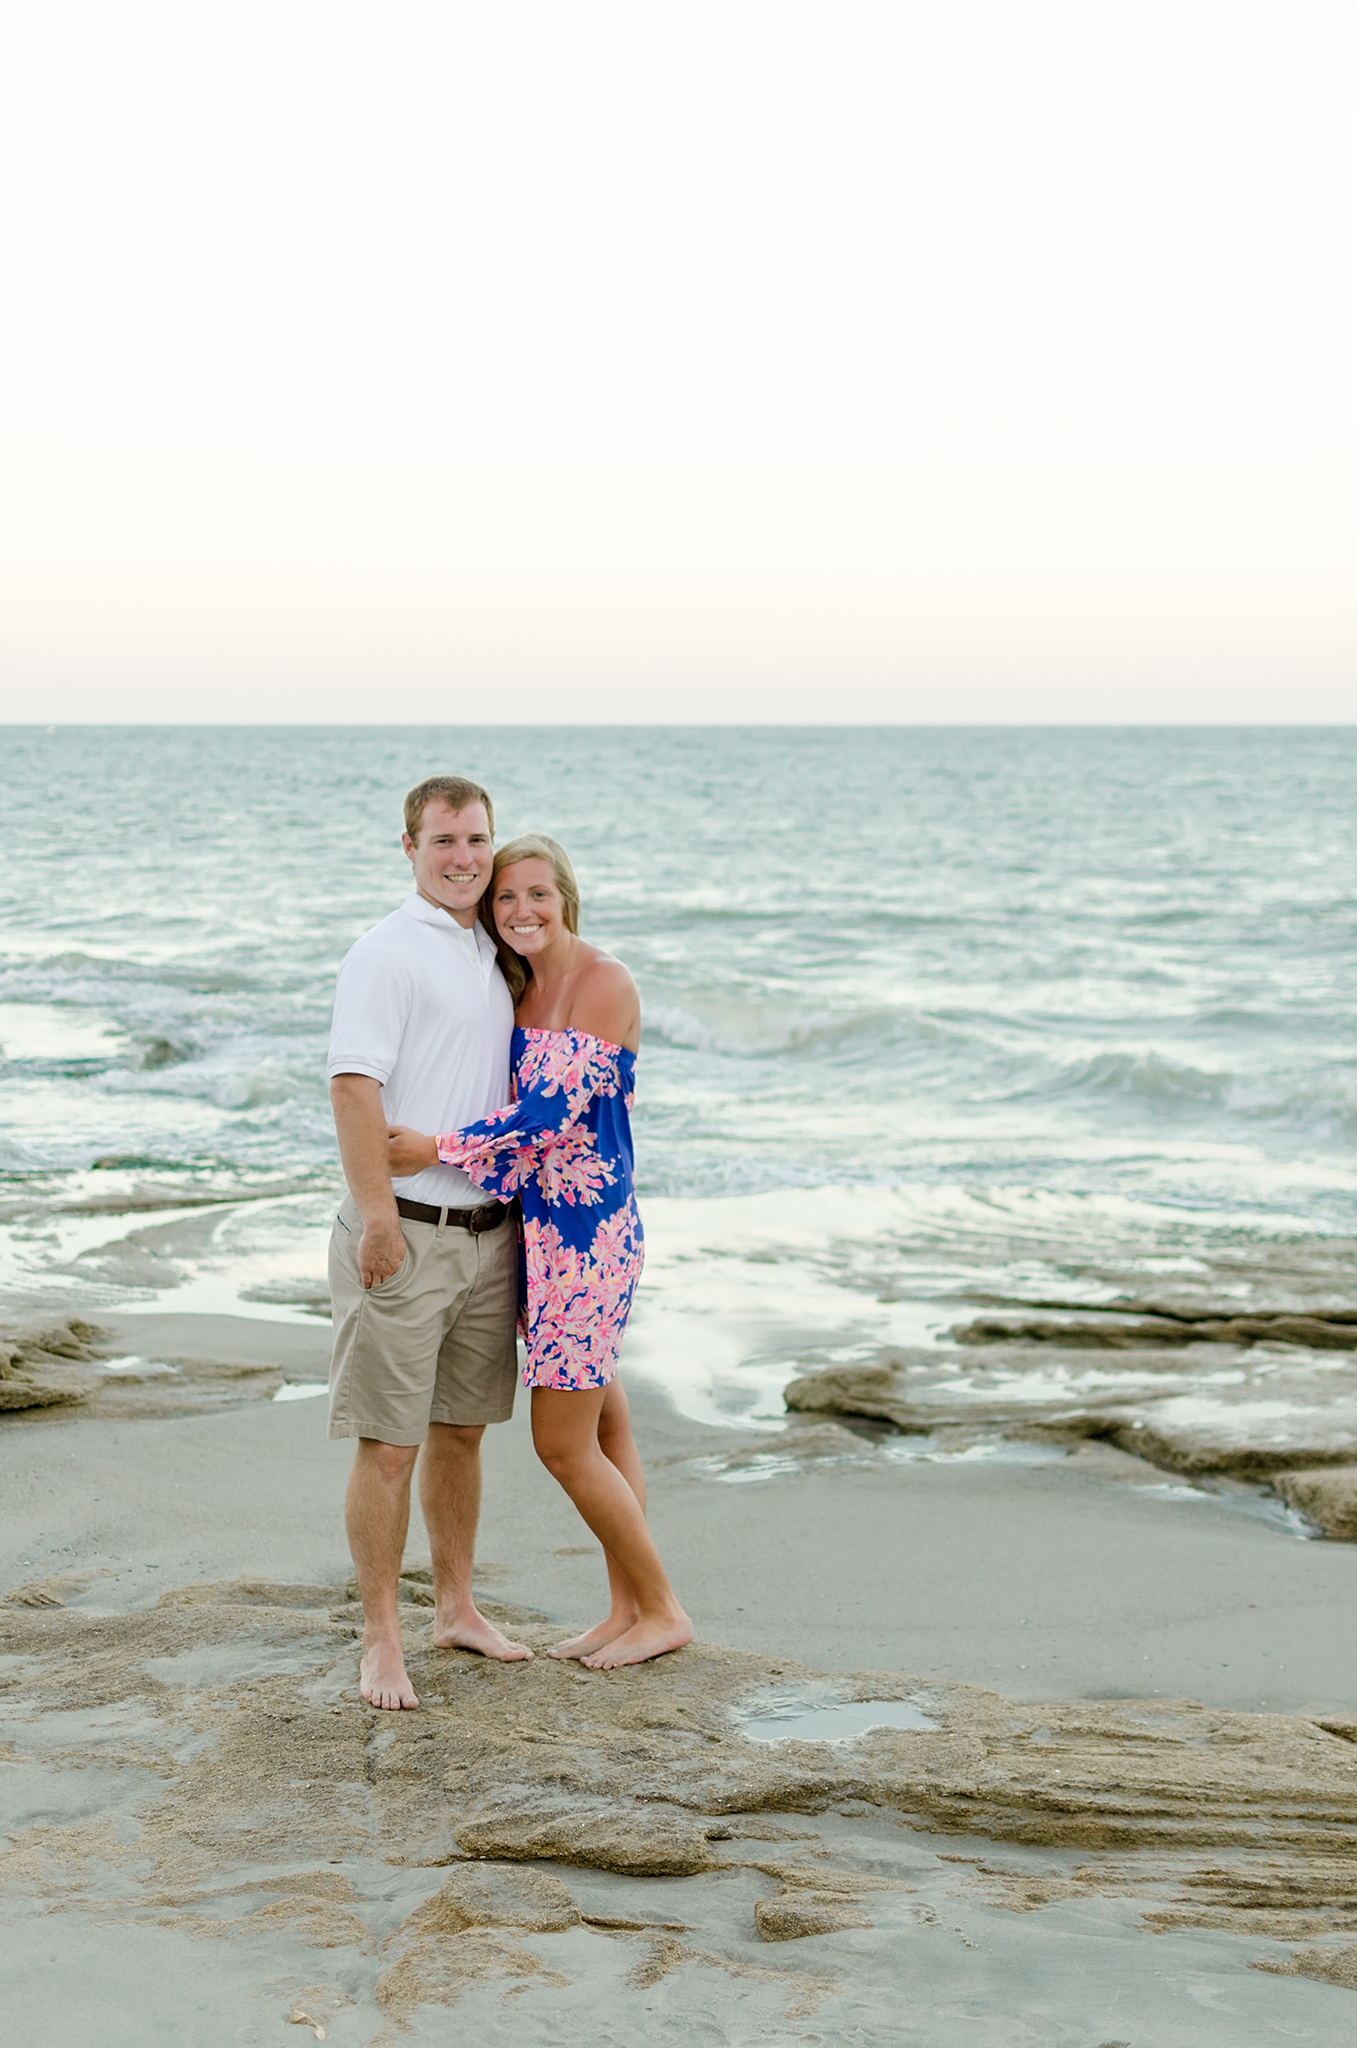 Kure Beach, NC engagement photography